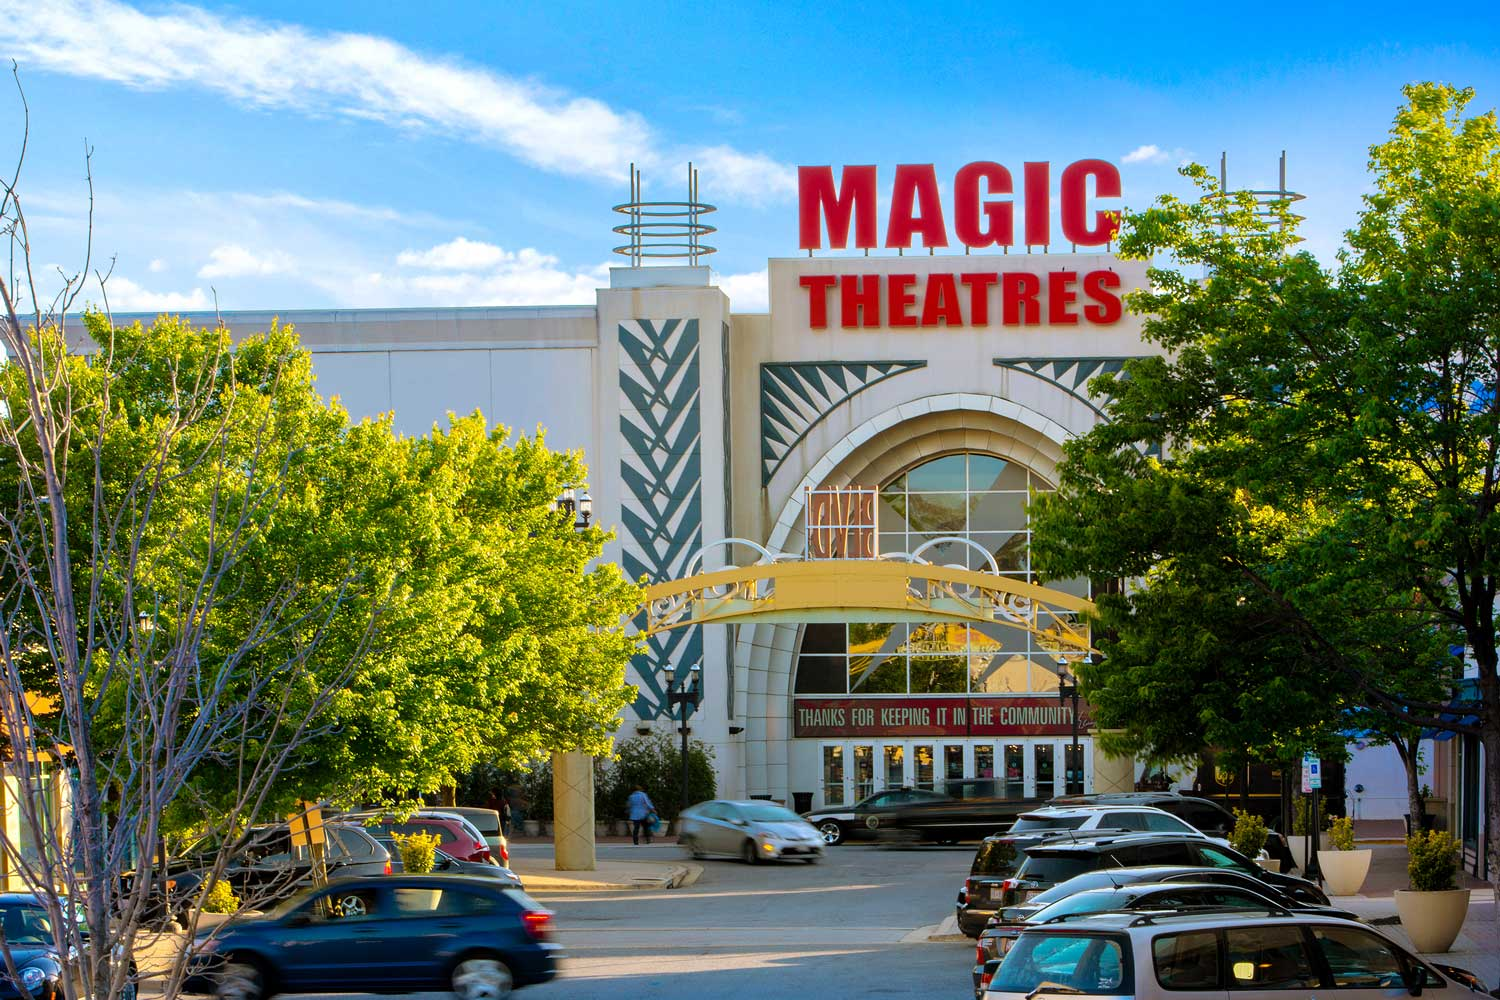 10 minutes to AMC Magic Johnson Capital Center movie theater